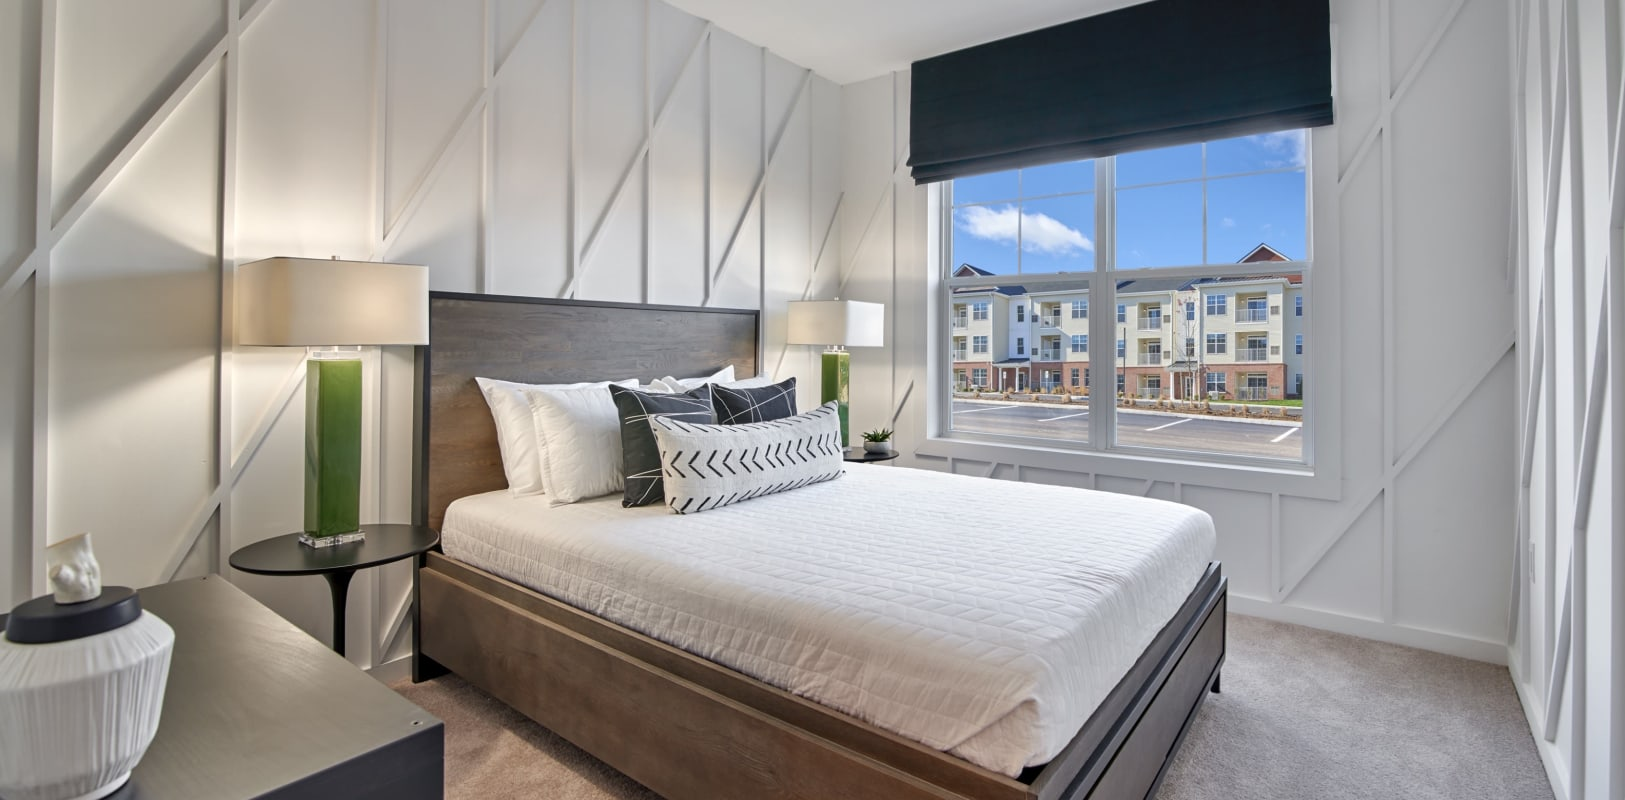 Comfortable bedroom with plush carpeting at The Mills at Lehigh in Bethlehem, Pennsylvania